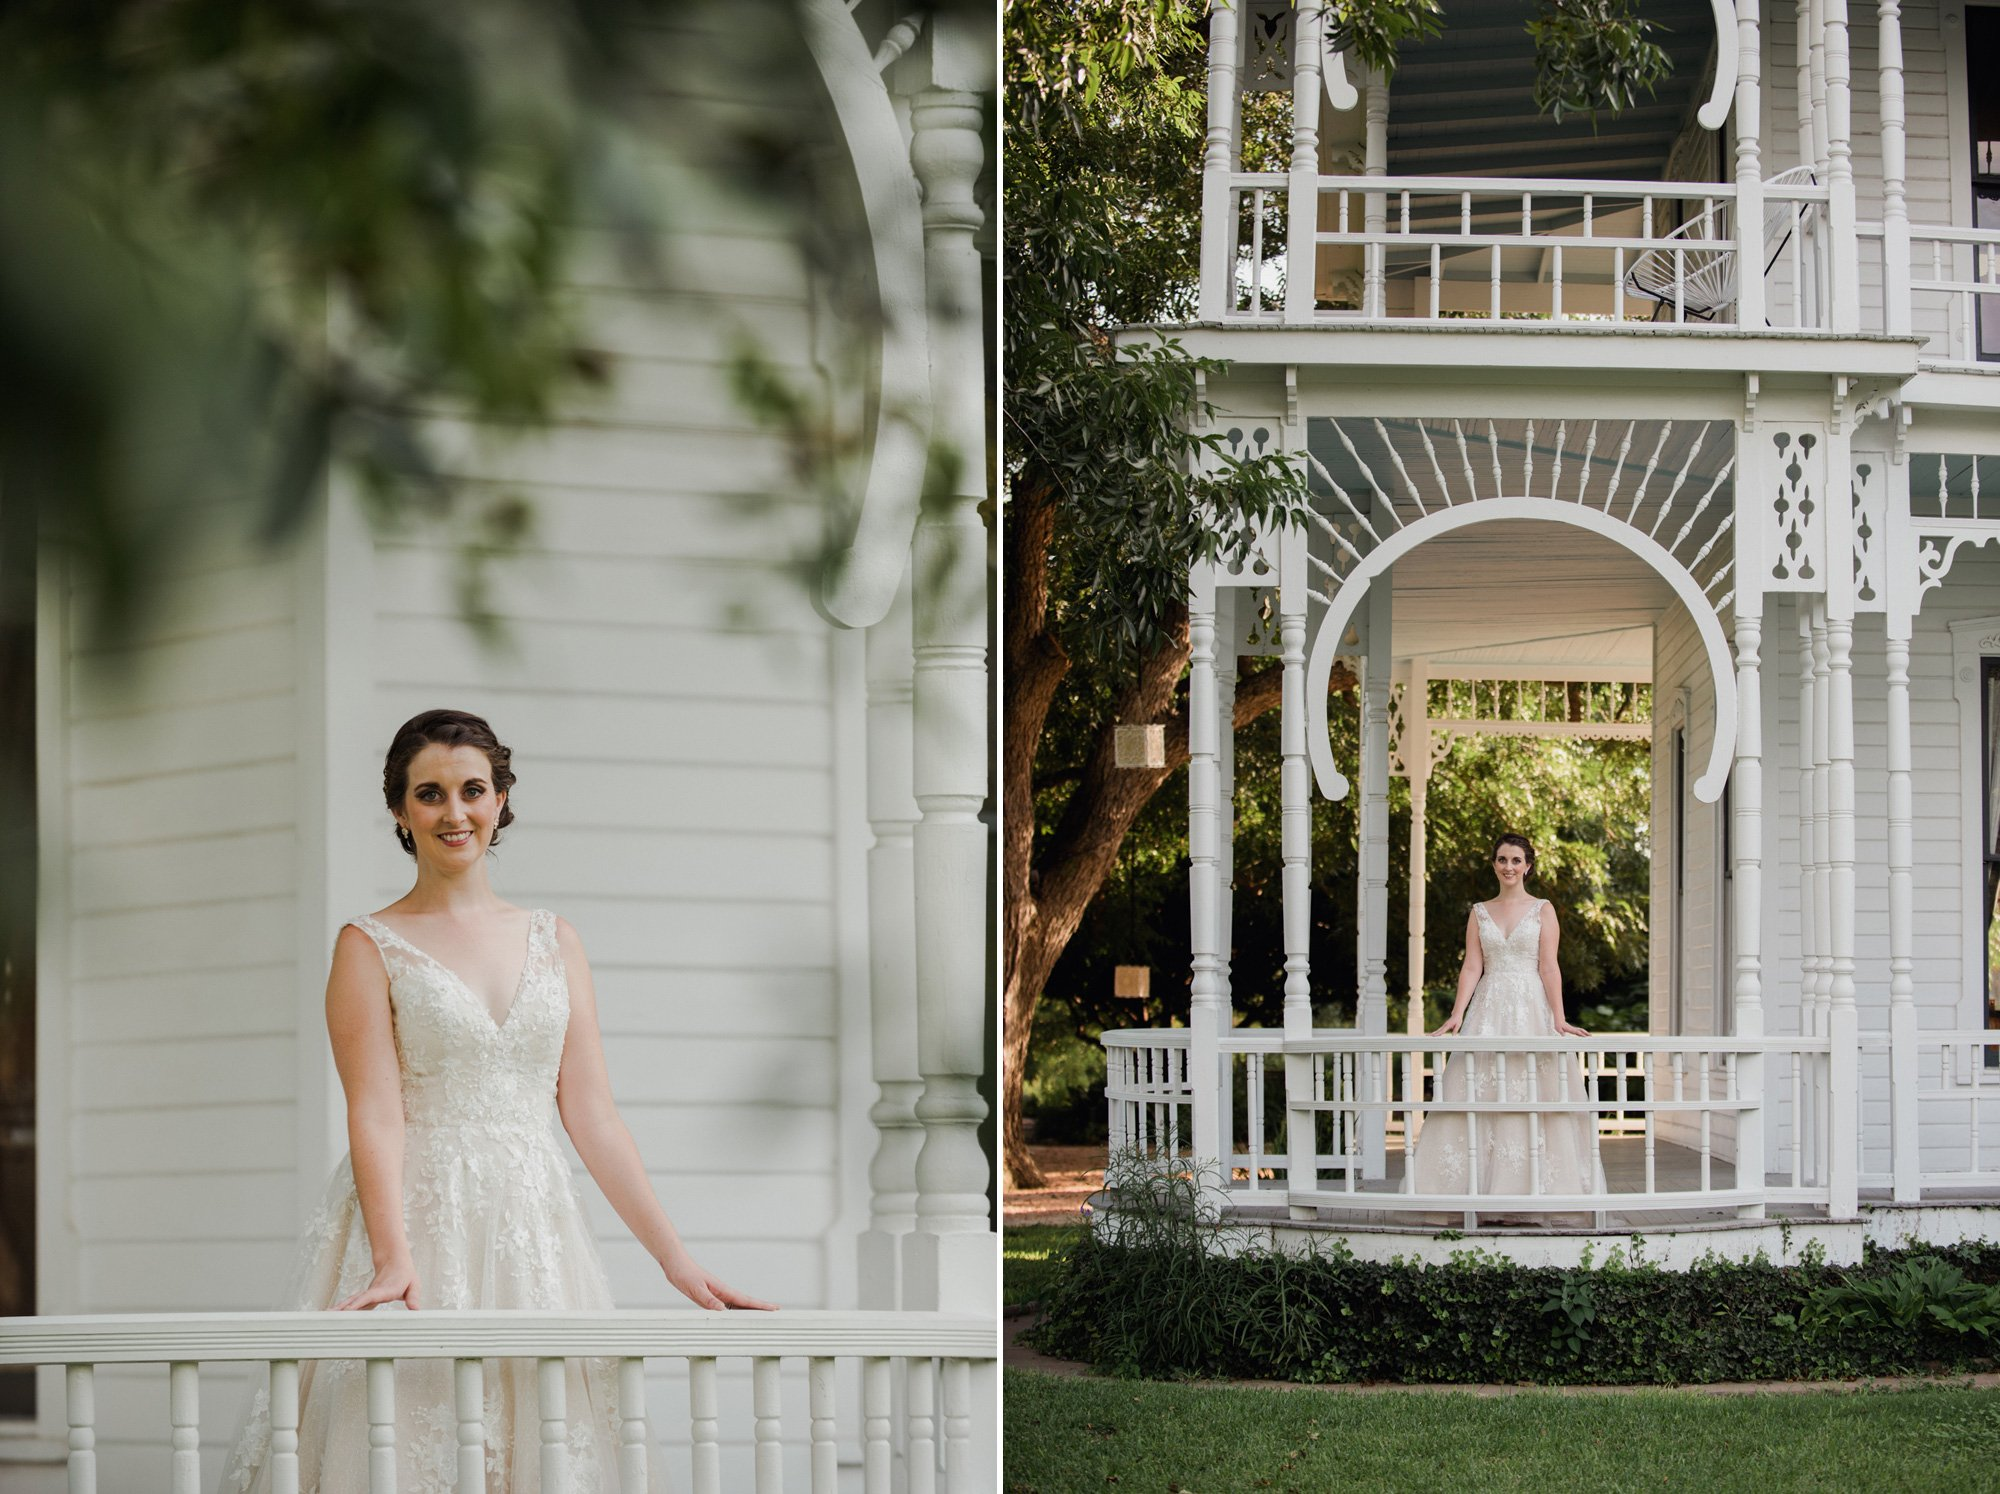 bridal portraits at the barr mansion on the porch during the summer, barr mansion bridal session